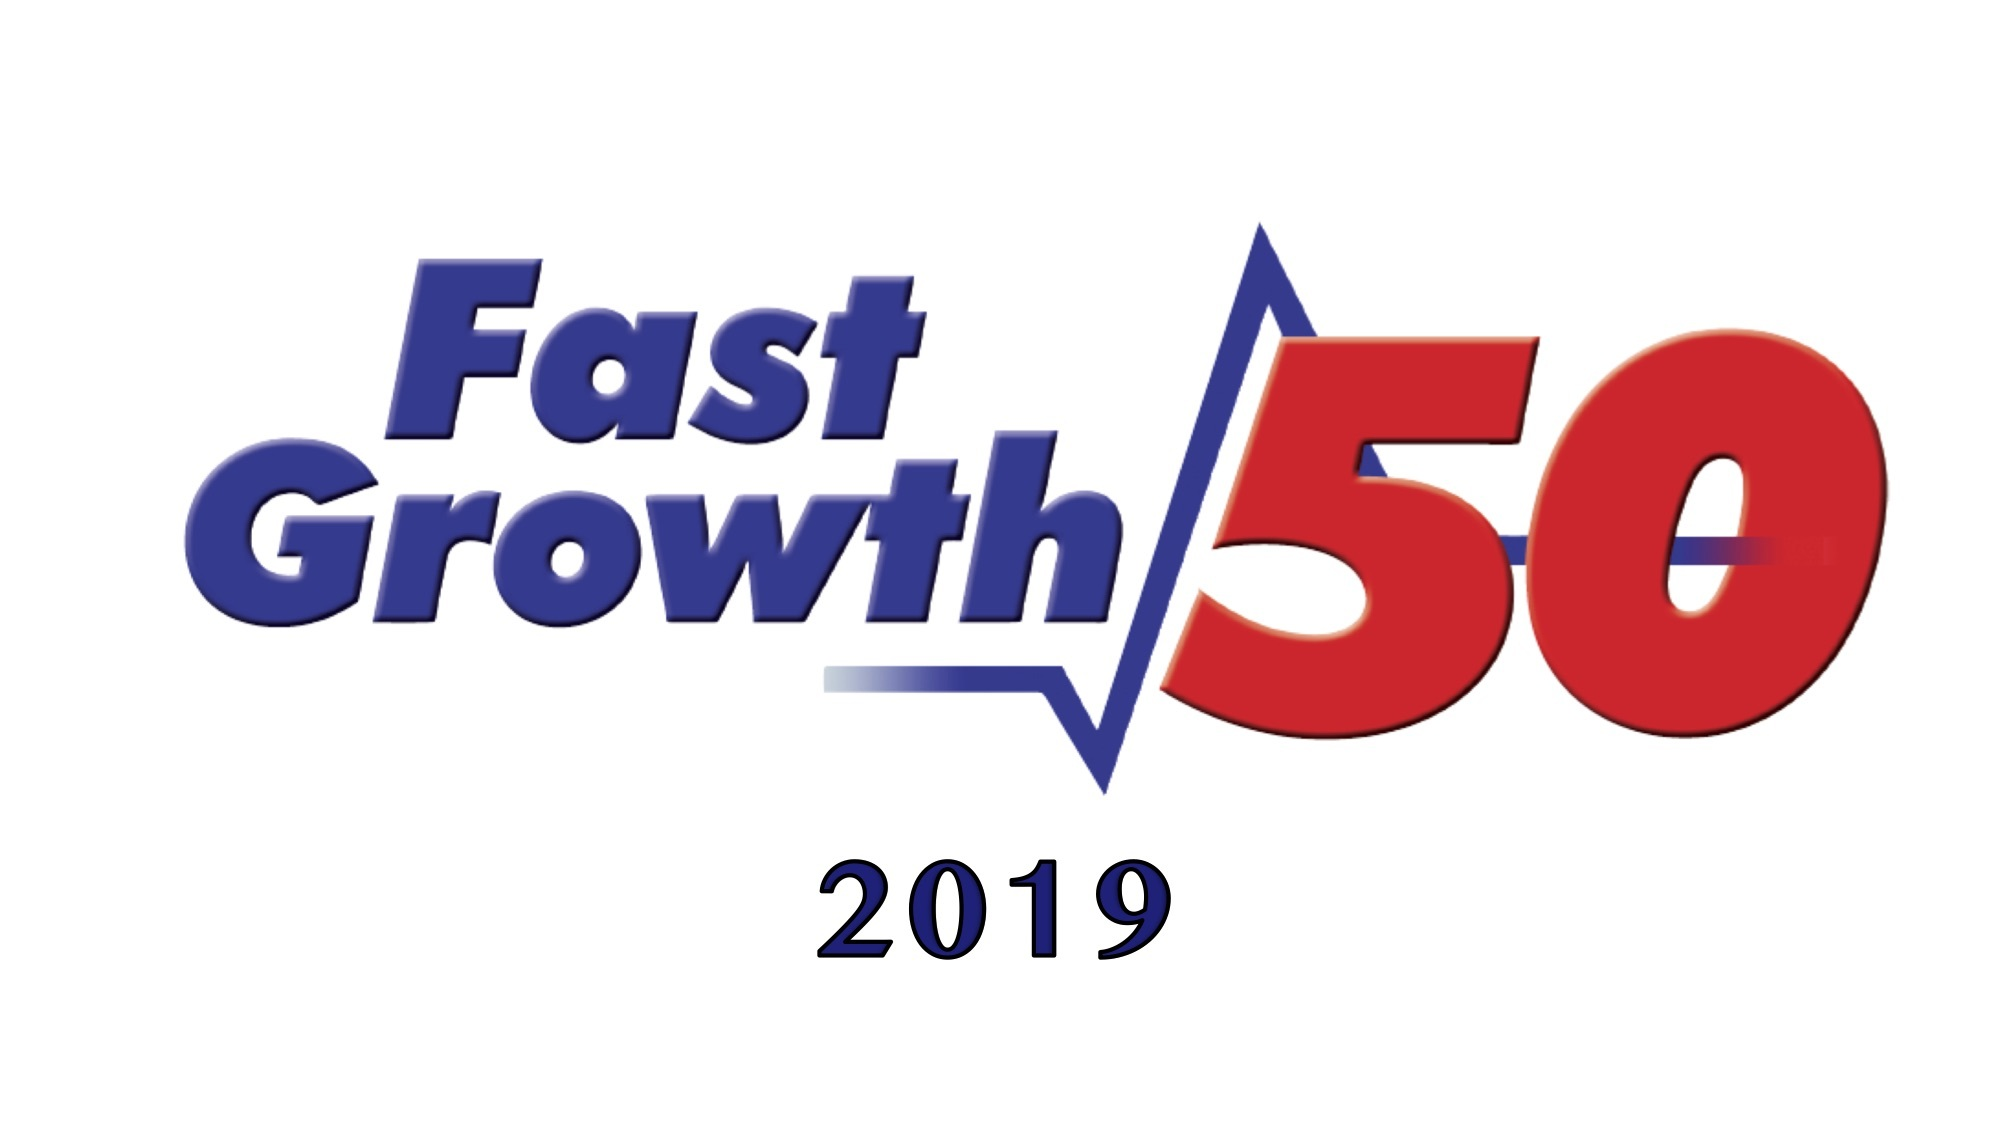 Wales Fast Growth 50 winners